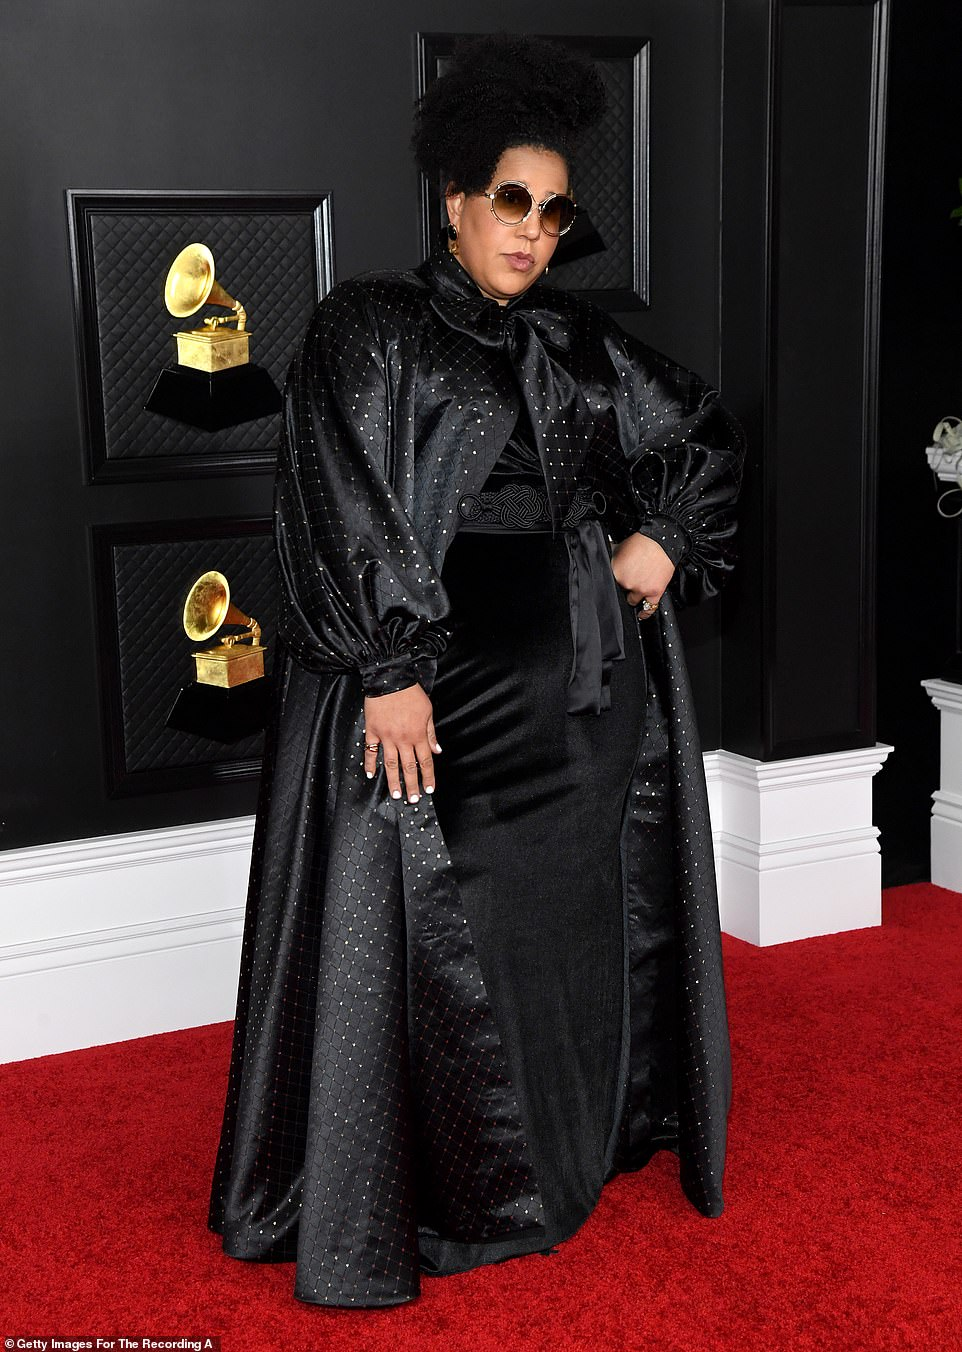 Dark side: Brittany Howard opted for gothic glam in a black gown and dramatic cape with silver sequins